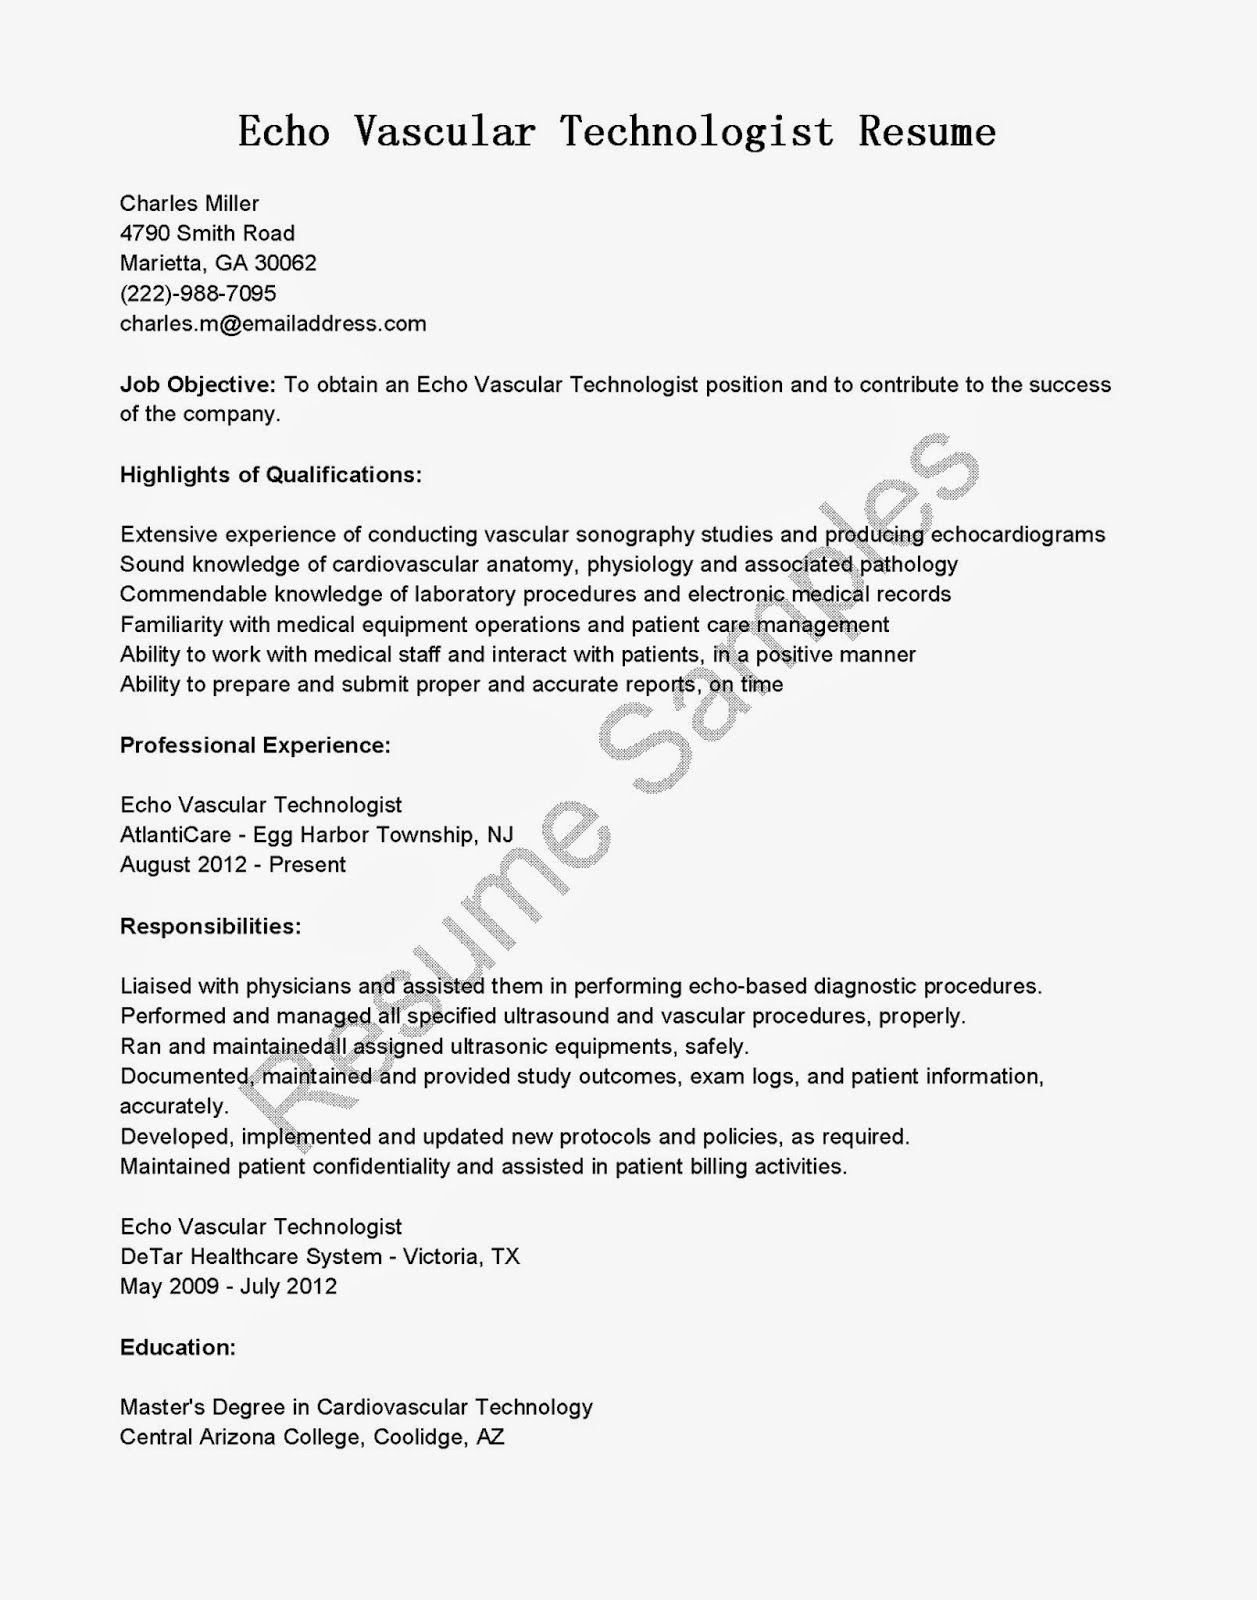 sonogram technician cover letter international consultant cover letter echo2bvascular2btechnologist2bresume sonogram - Ultrasound Technician Cover Letter